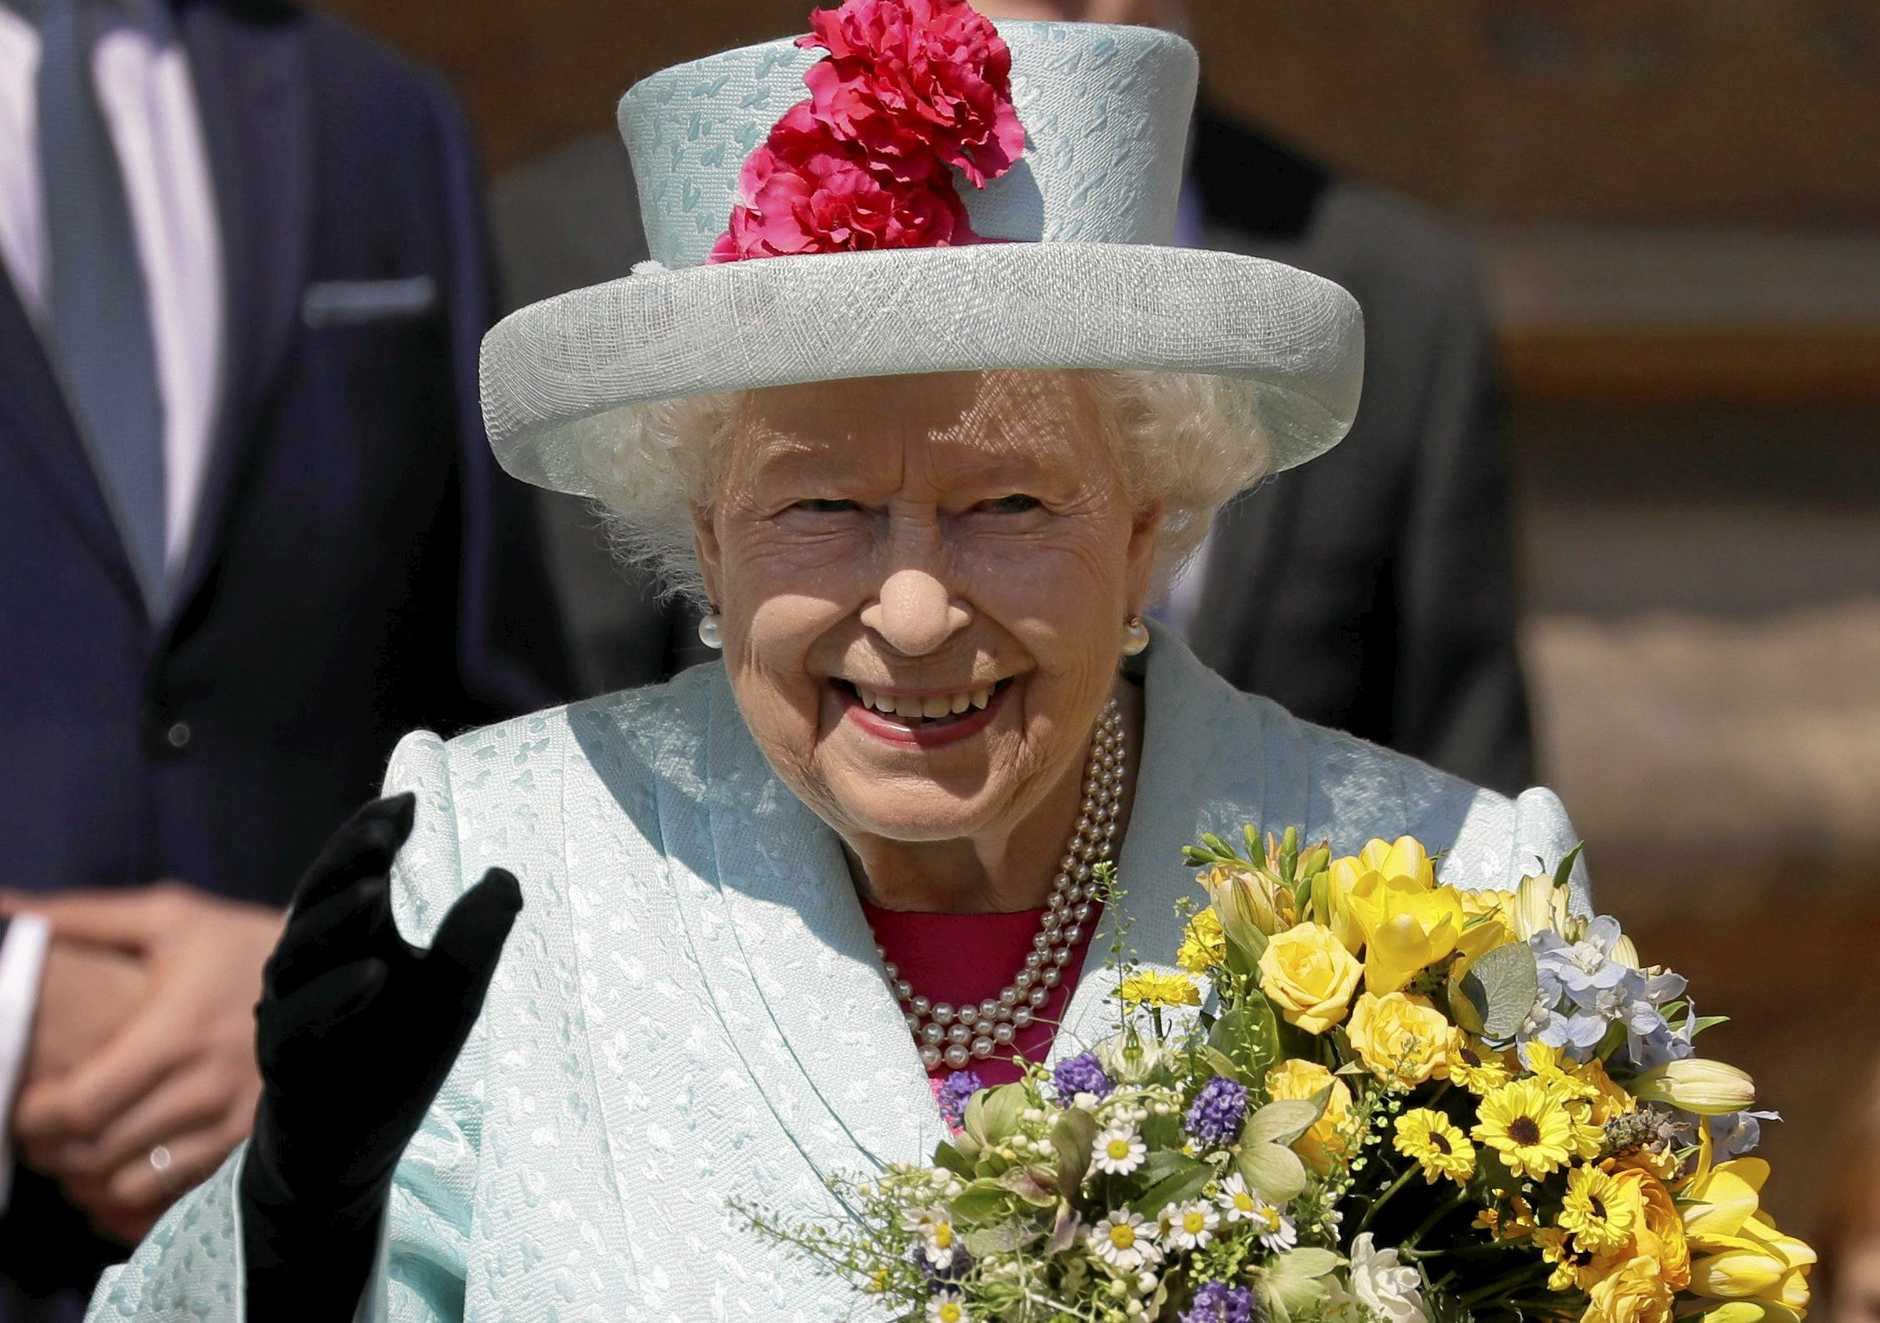 Britain's Queen Elizabeth II has sent a message to fire survivors via the Governor General of Australia.